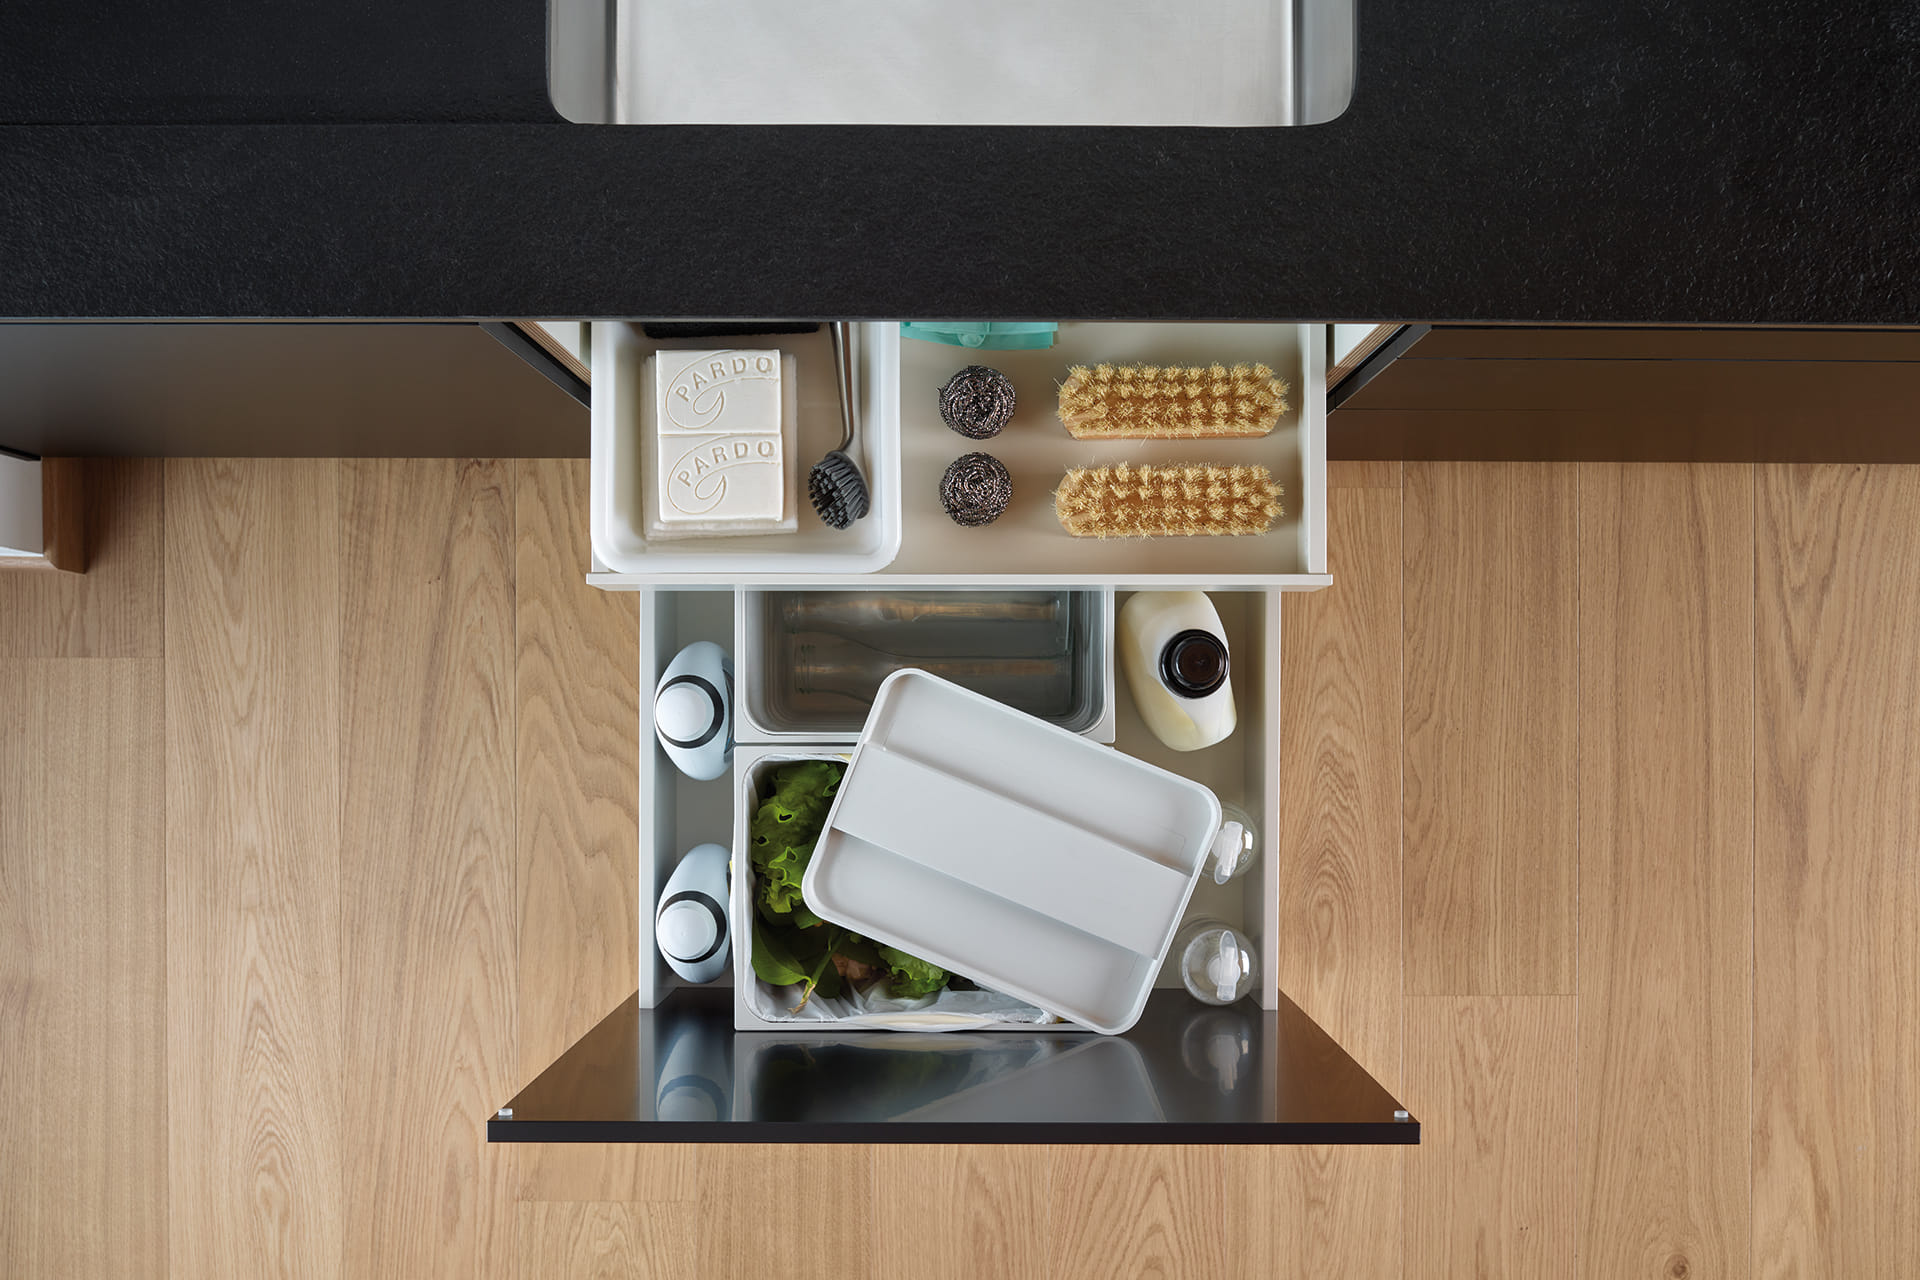 Santos kitchen furniture: base units, essentials for working, organising and storing